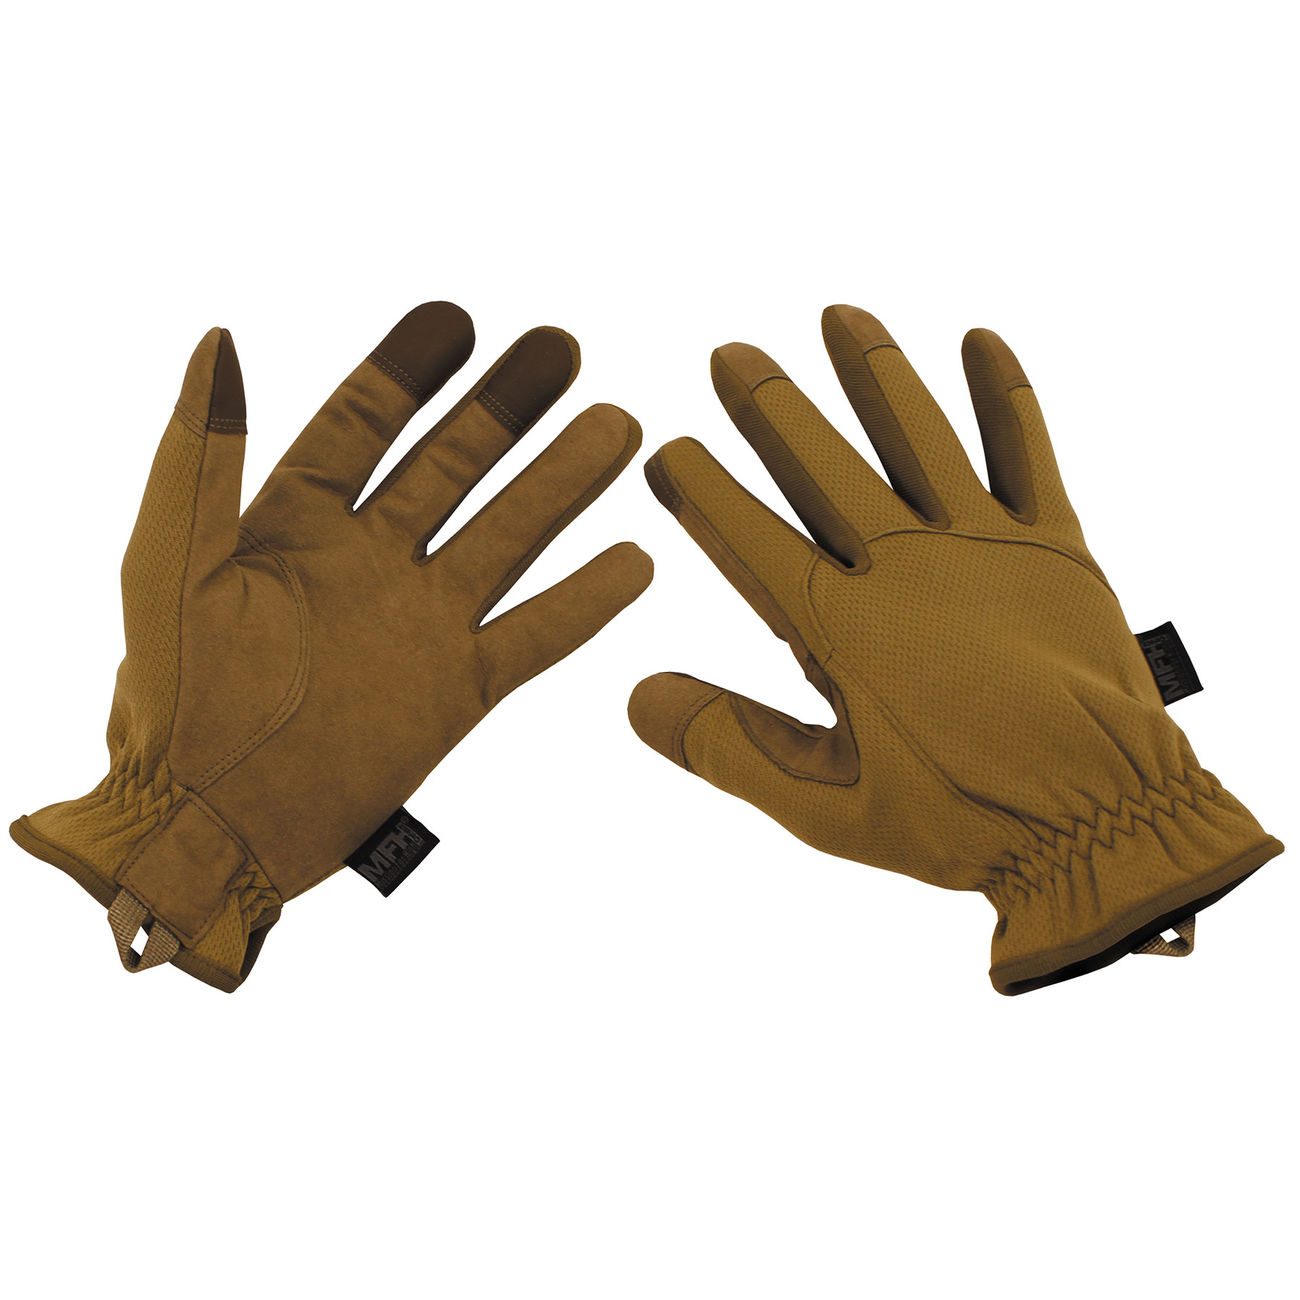 MFH Fingerhandschuh Lightweight Touch coyote tan 0